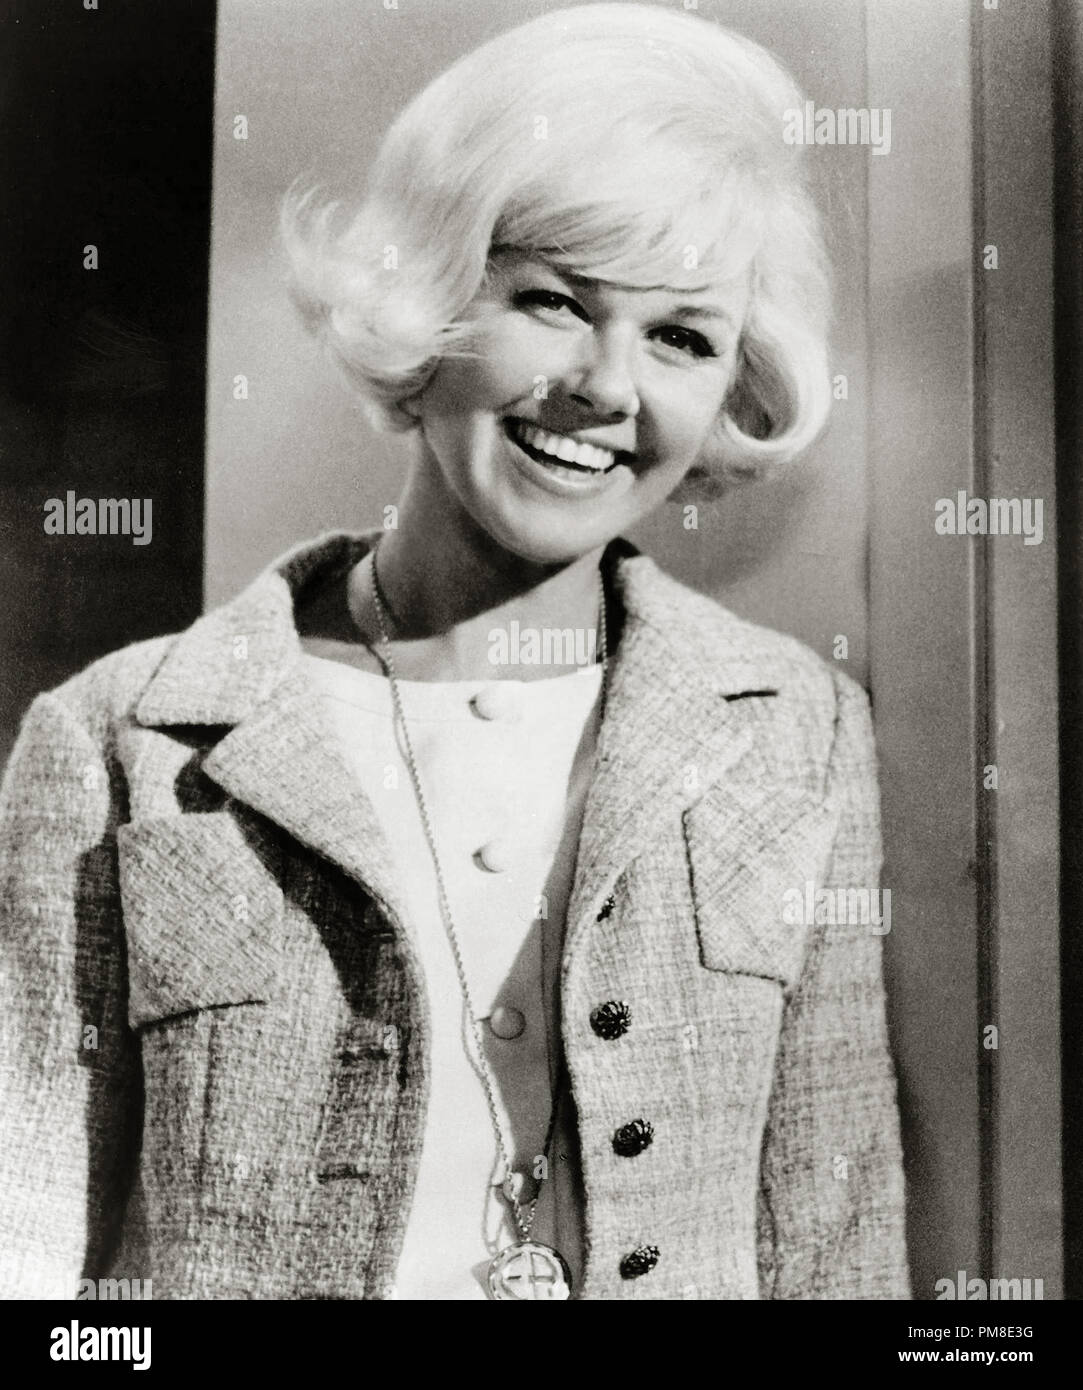 Doris Day 'Move Over Darling' 1963 20th Century  File Reference # 31202_250THA - Stock Image